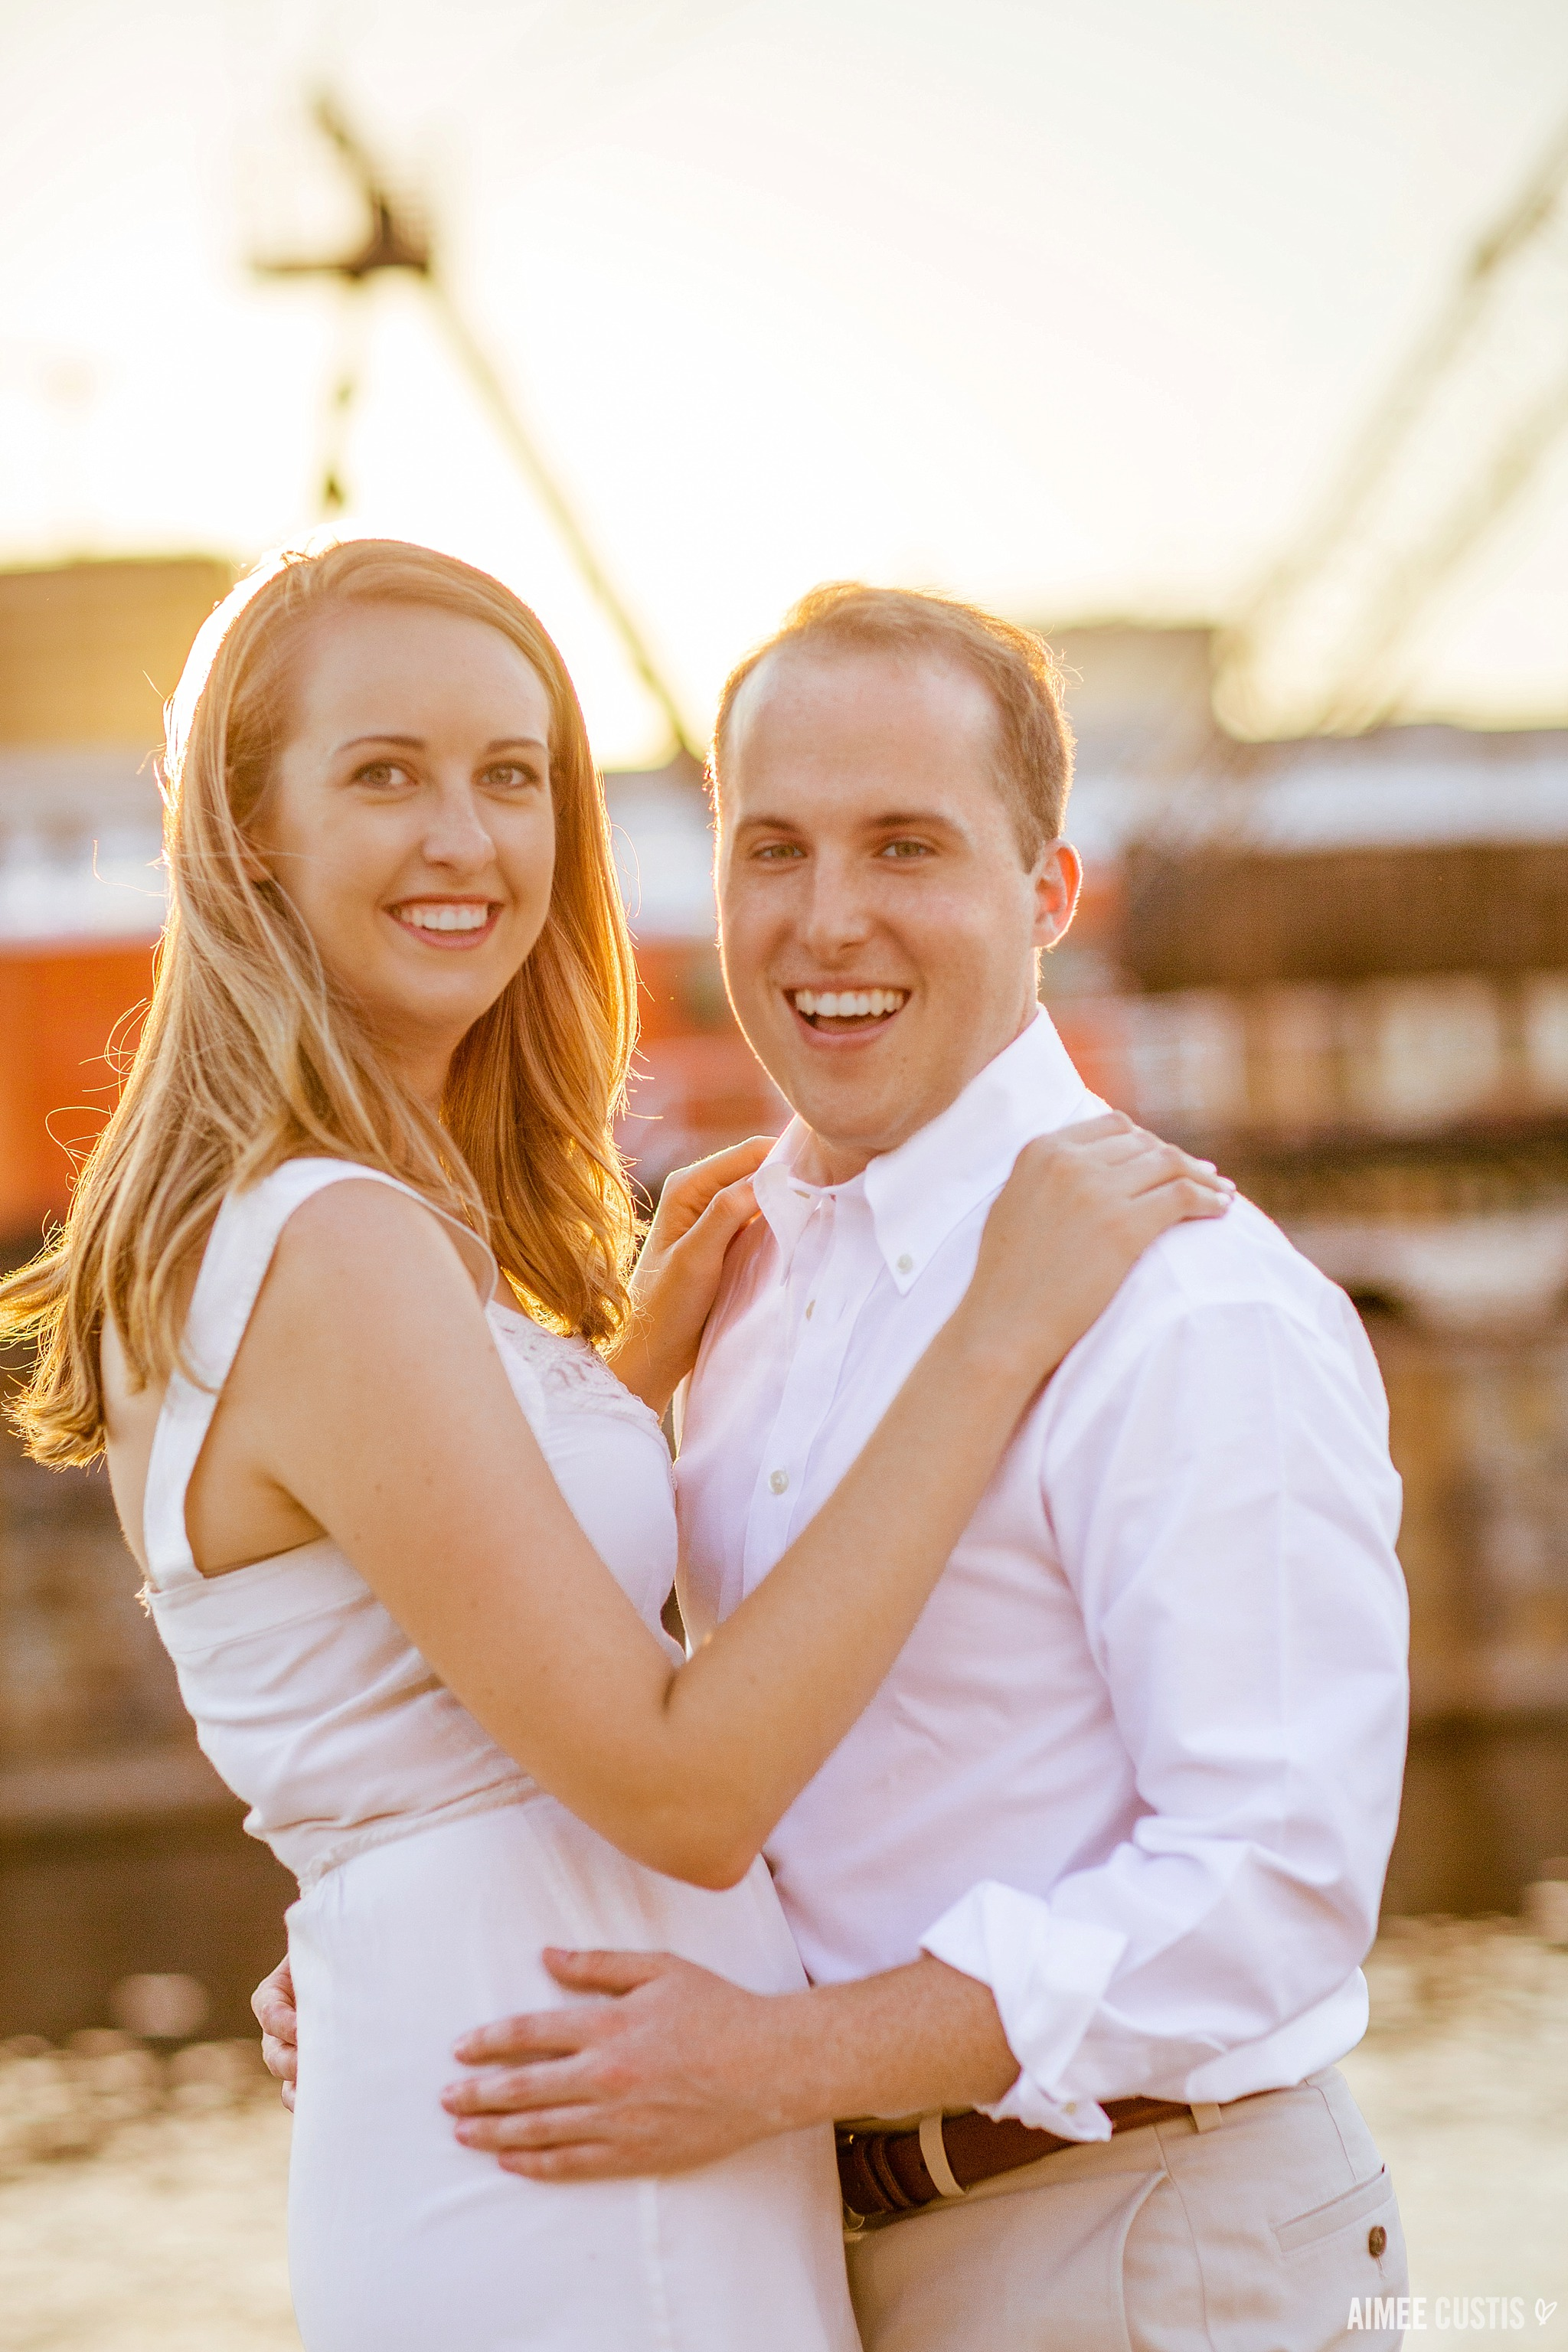 Fell's Point Baltimore engagement photos